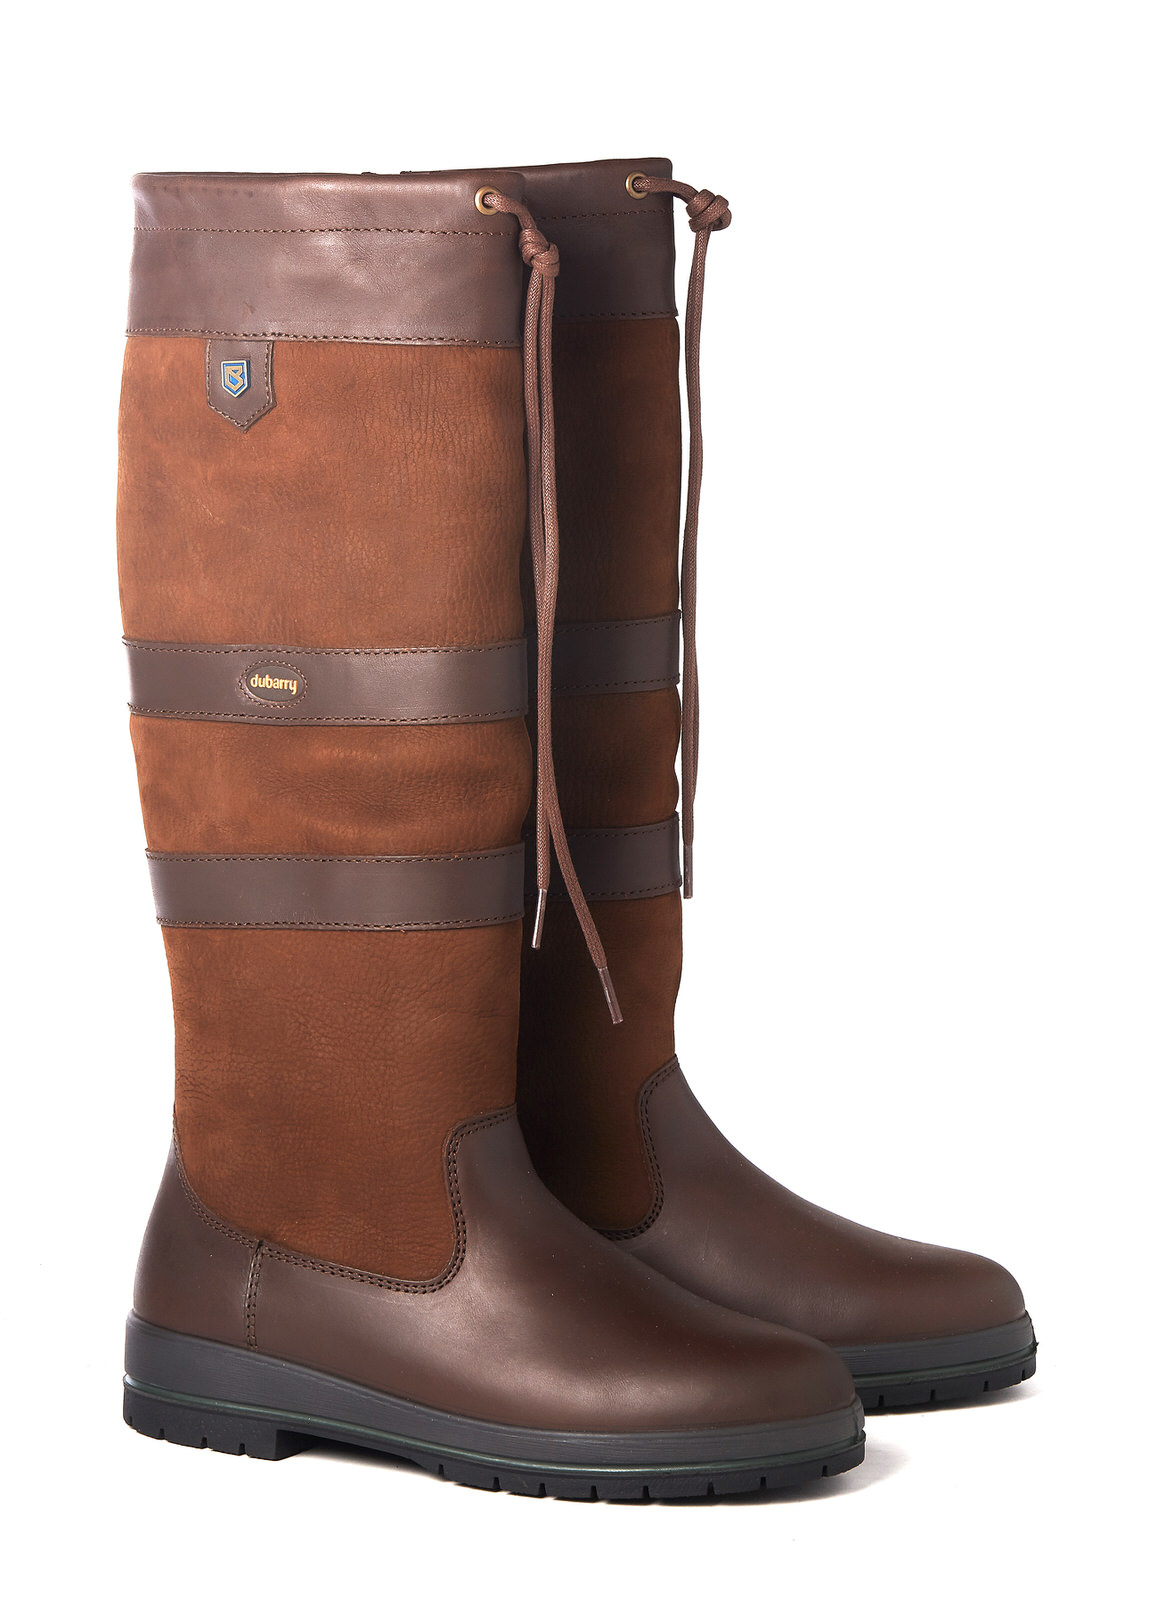 Galway_SlimFit?_Country_Boot_Walnut_Image_1